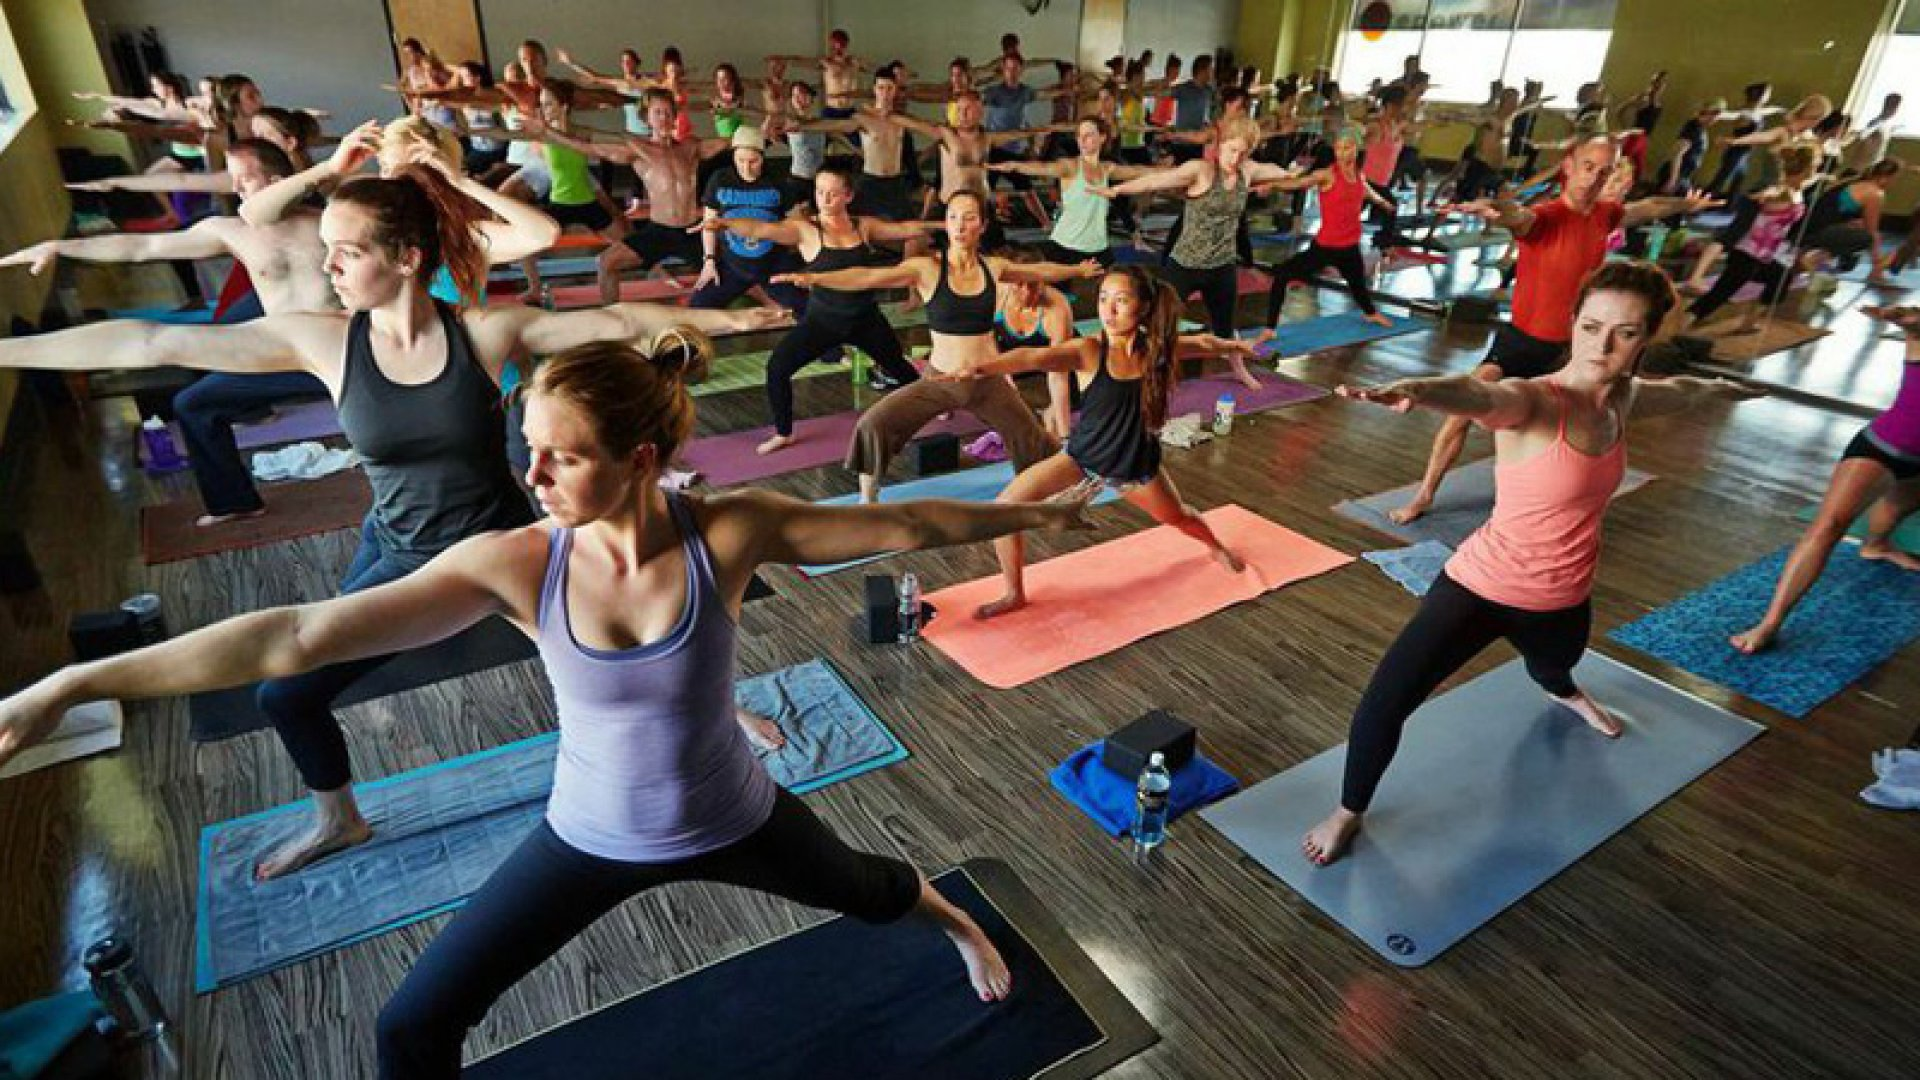 Get Ready for the Starbucks of Yoga